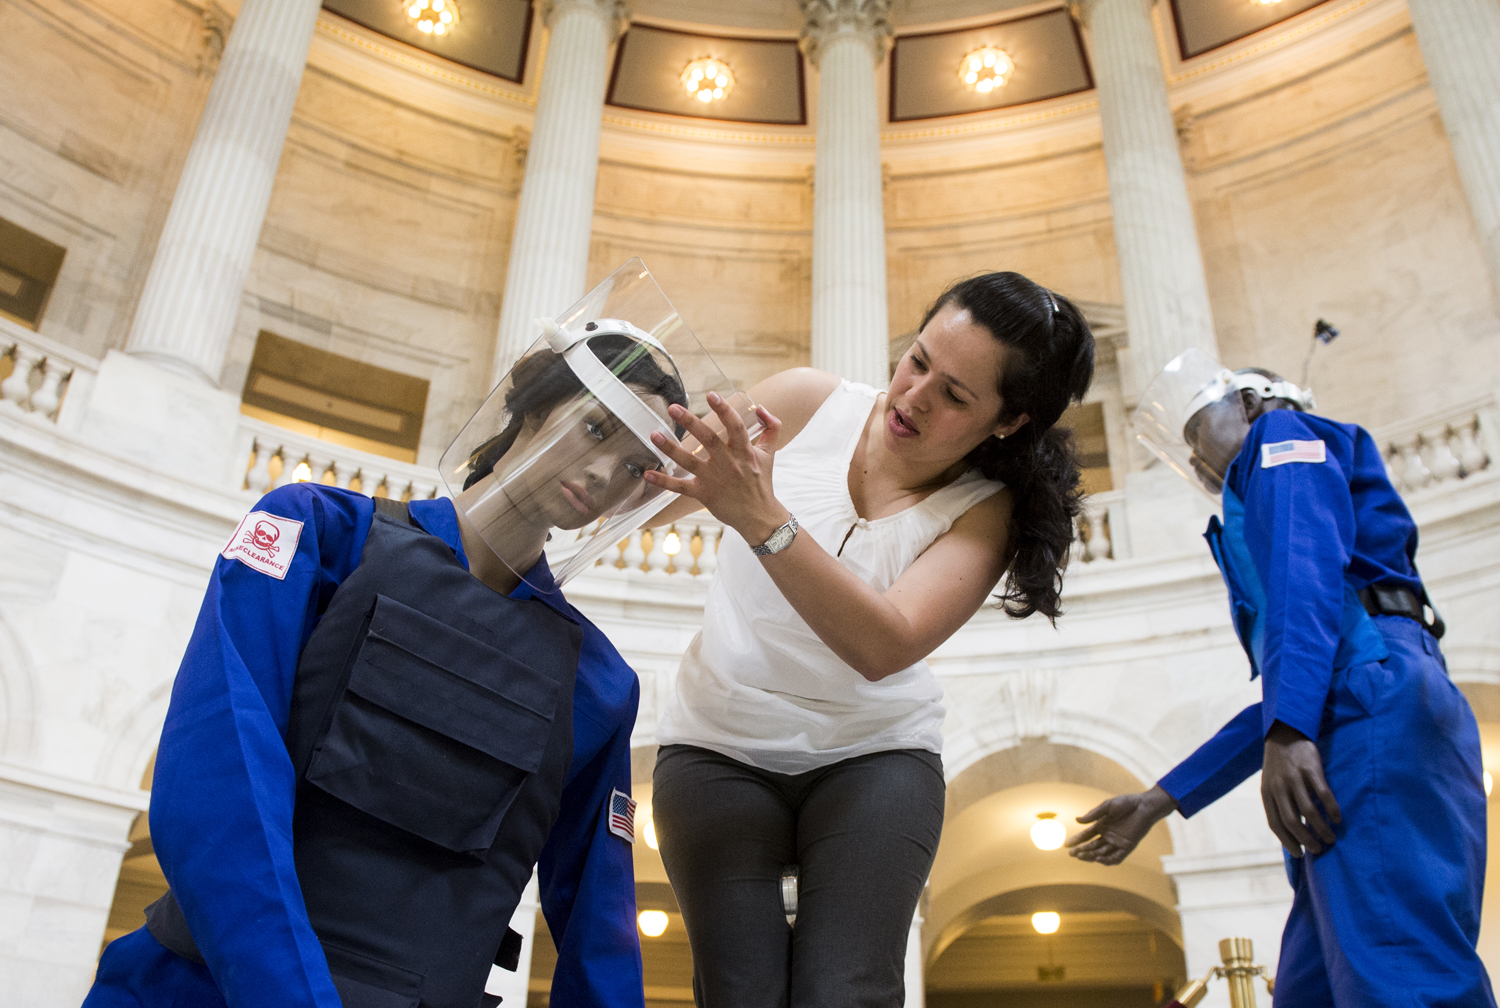 Claudia DelGado, of the Halo Trust, helps set up mannequins for an exhibit in the Russell Senate Office Building in Washington D.C. on May 6, 2013, on ridding the world of land mines.